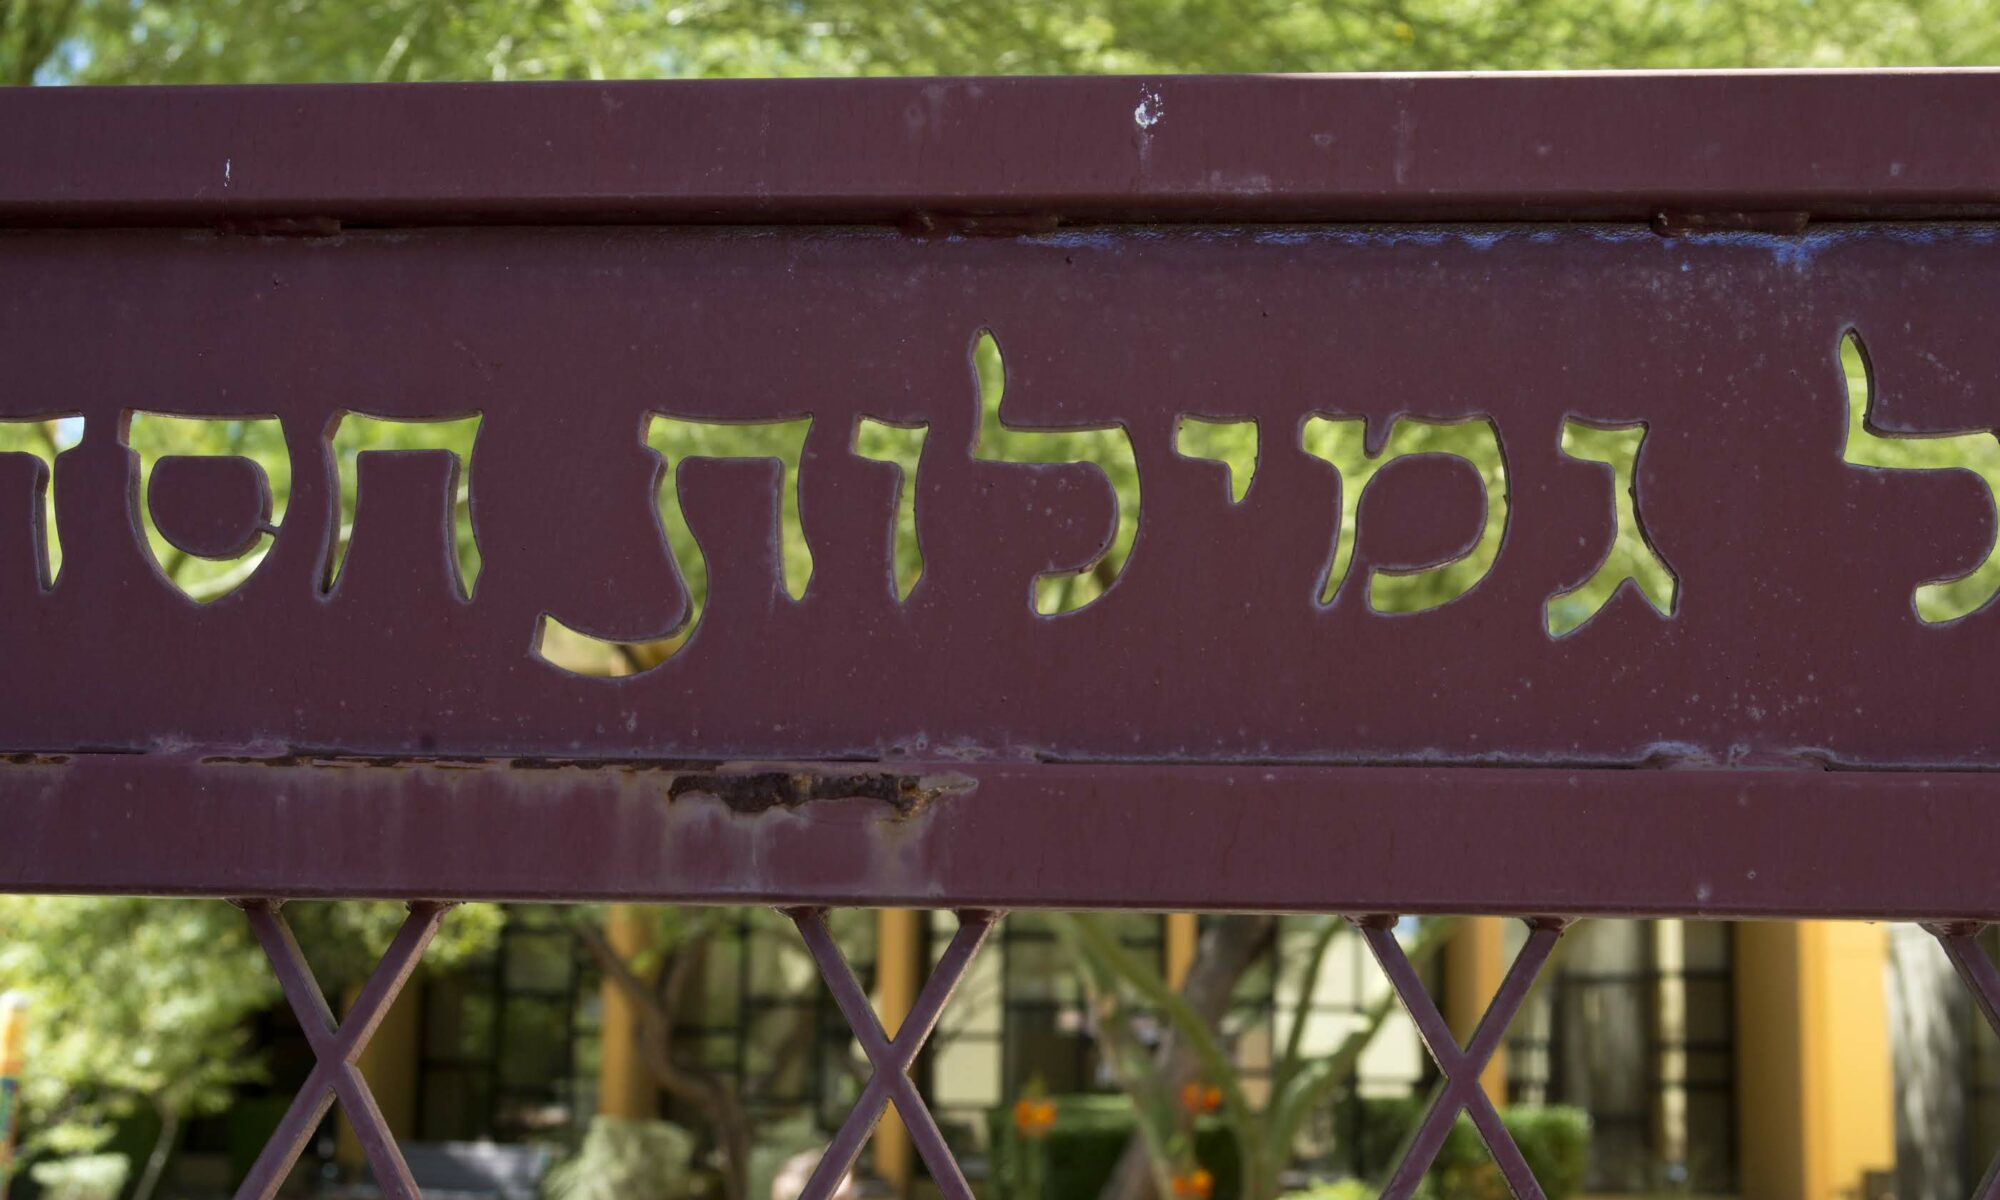 Congregation Ner Tamid as seen in Henderson